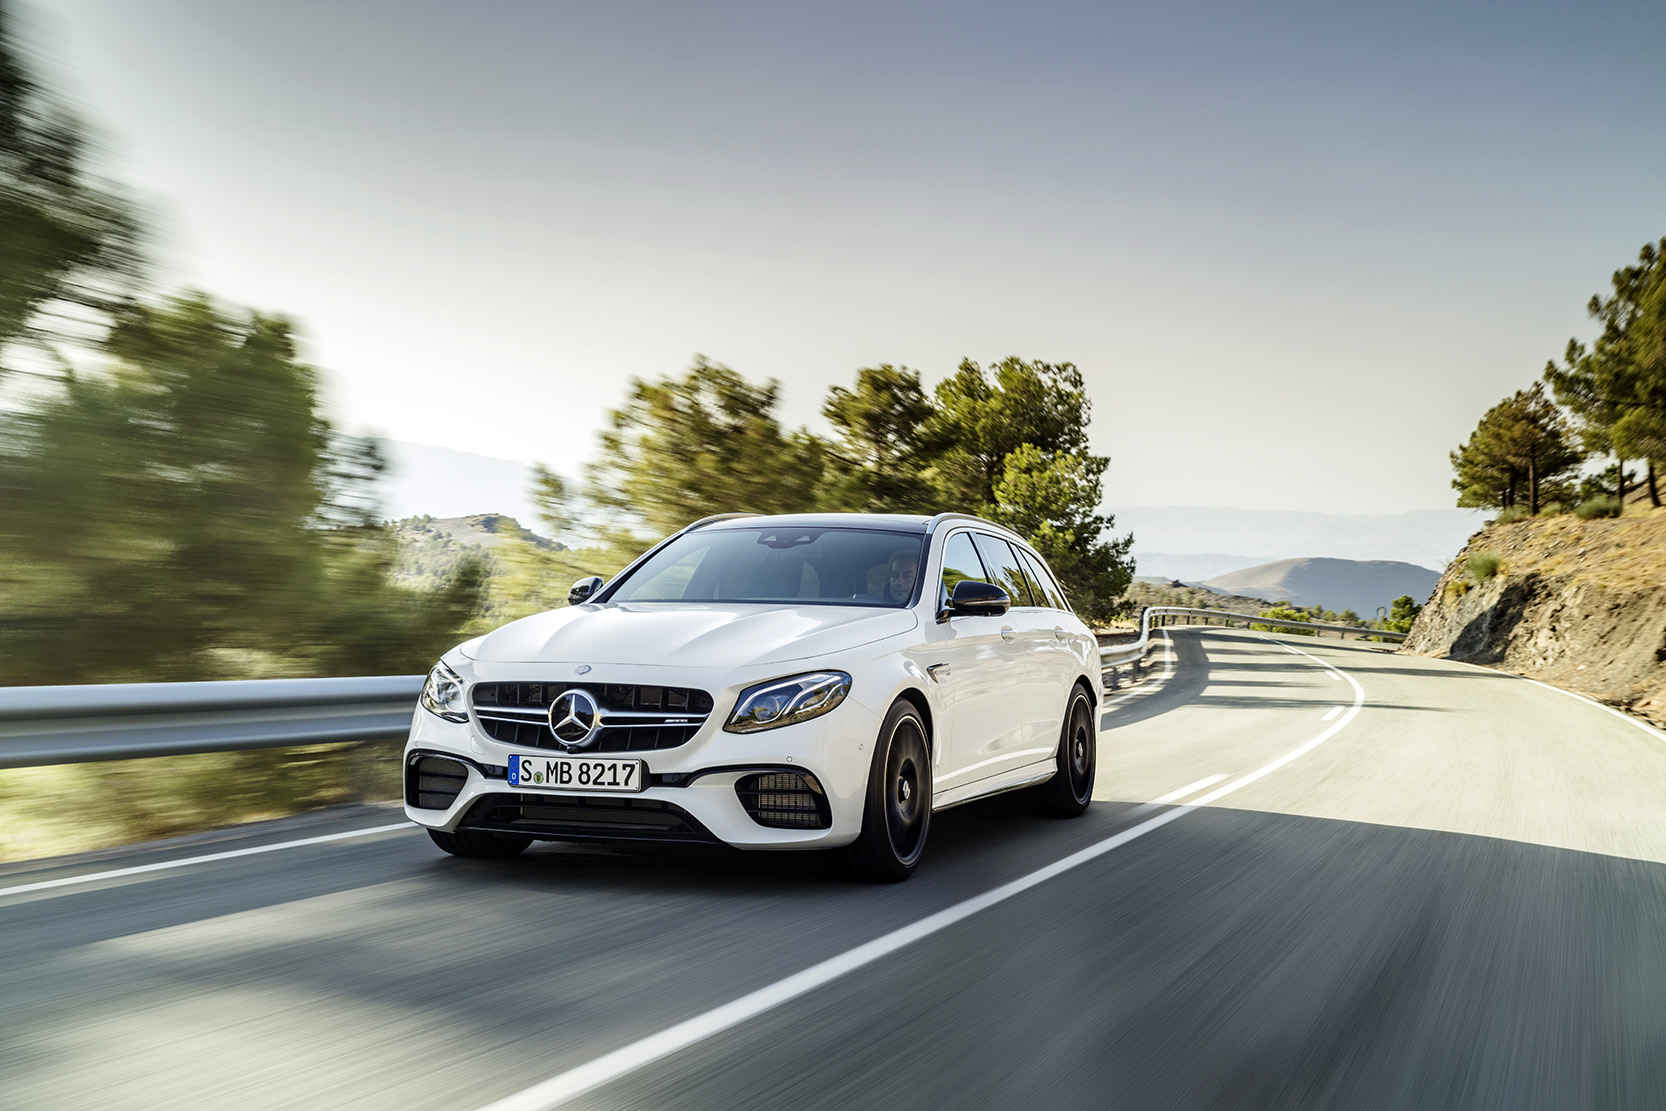 Exterieur_Mercedes-AMG-E63-Break-2018_0